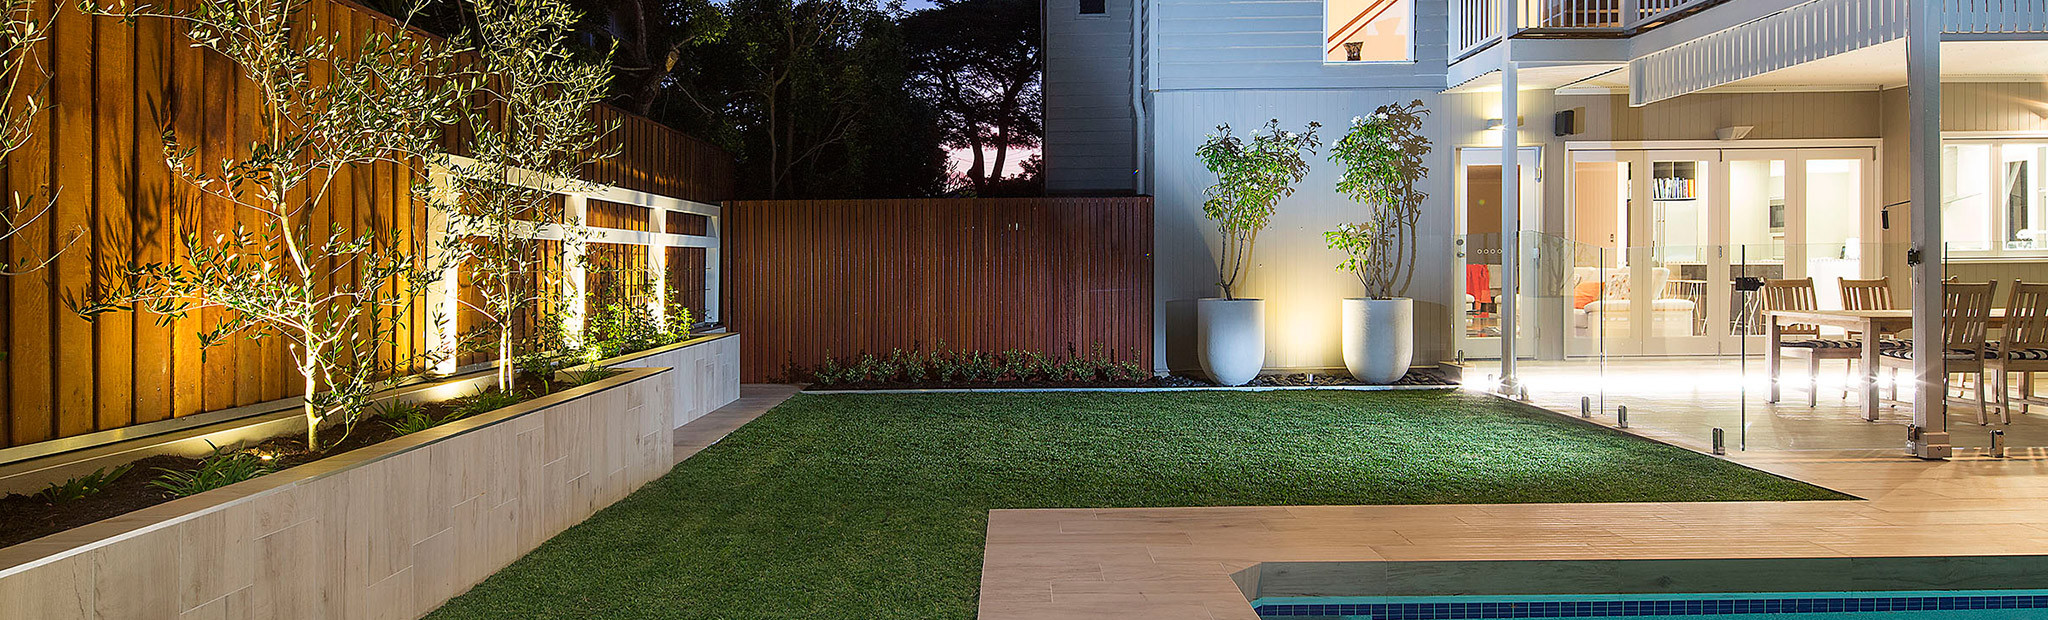 Landscape brisbane landscaping design for Garden design brisbane